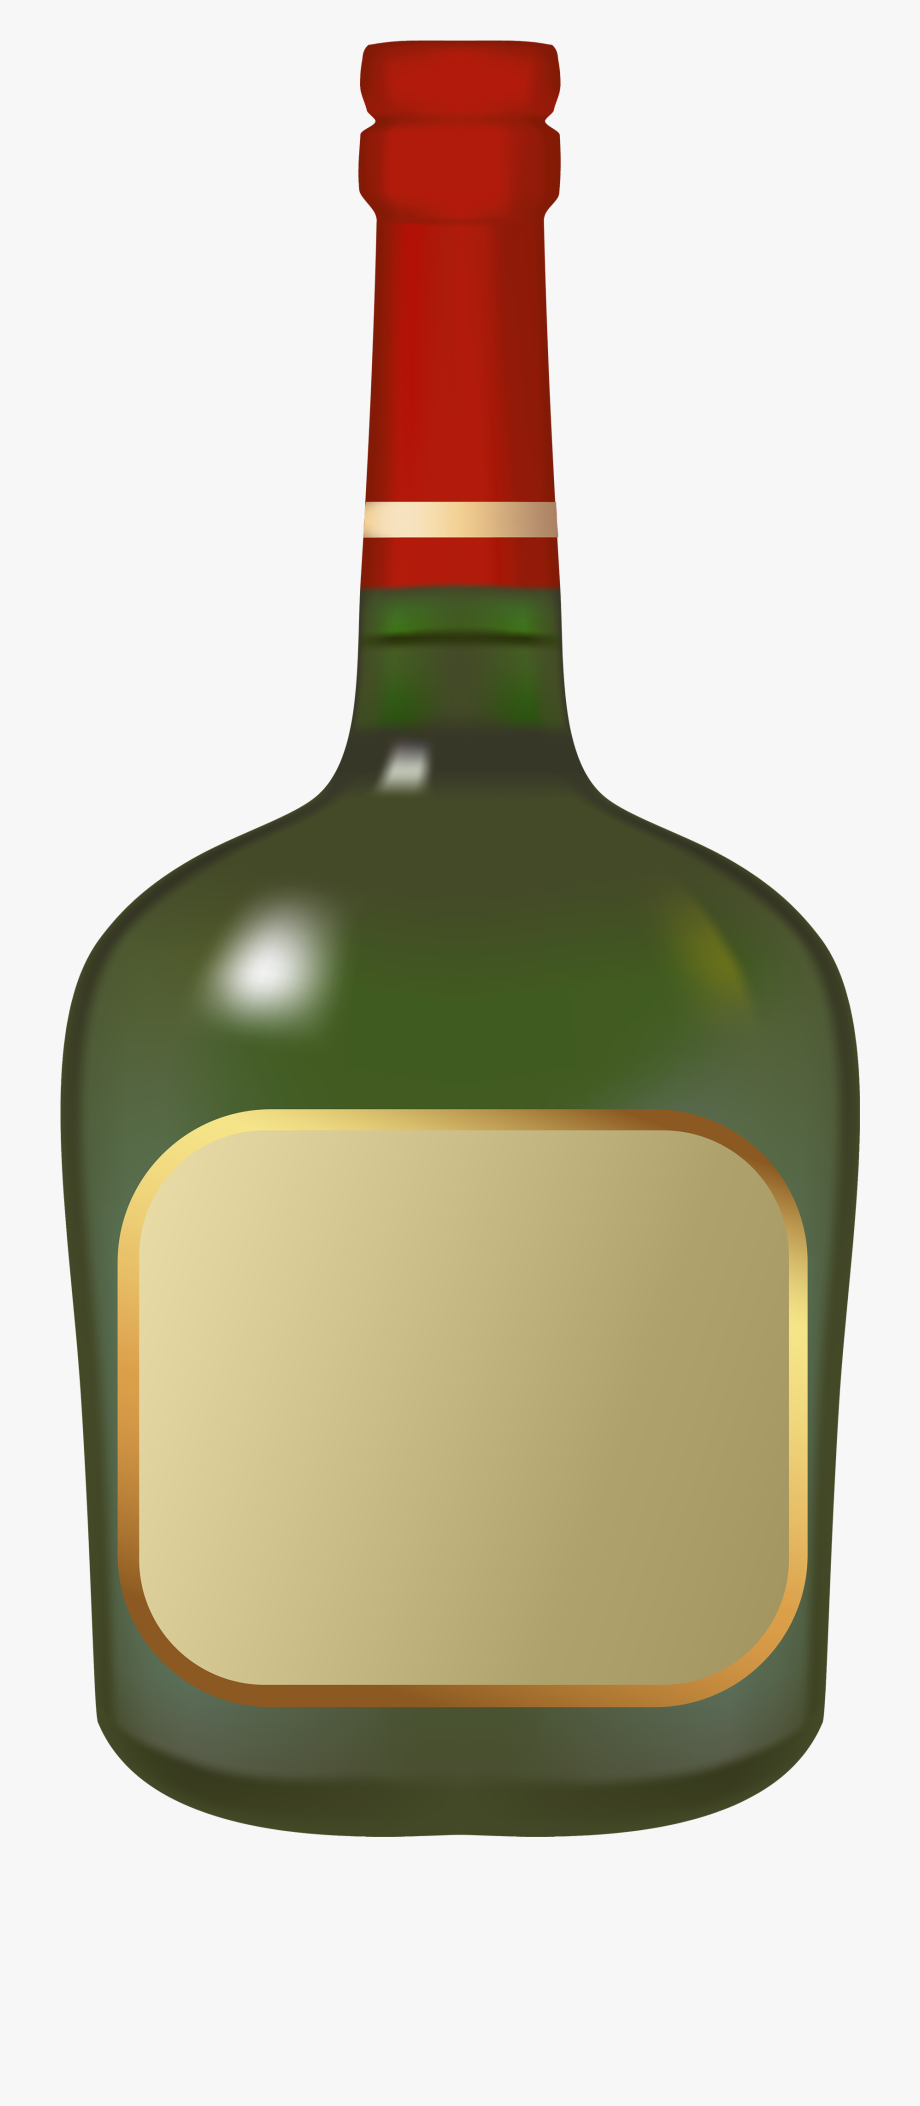 Simple Liquor Bottle Png Clipart.